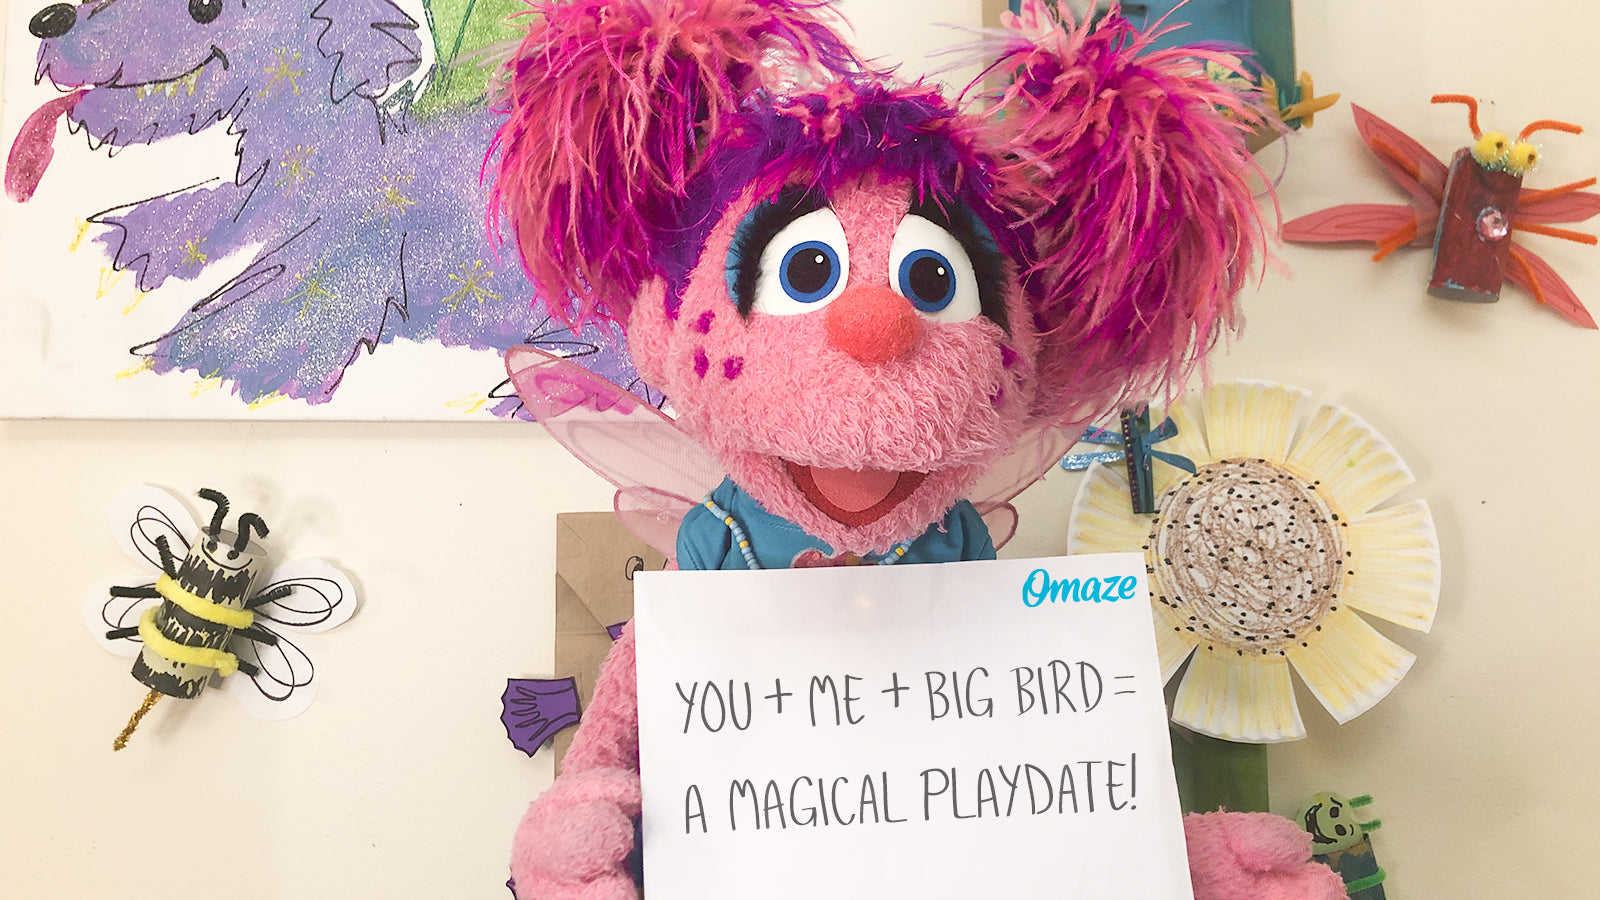 Join Sesame Street S Big Bird And Abby Cadabby For A Virtual Playdate